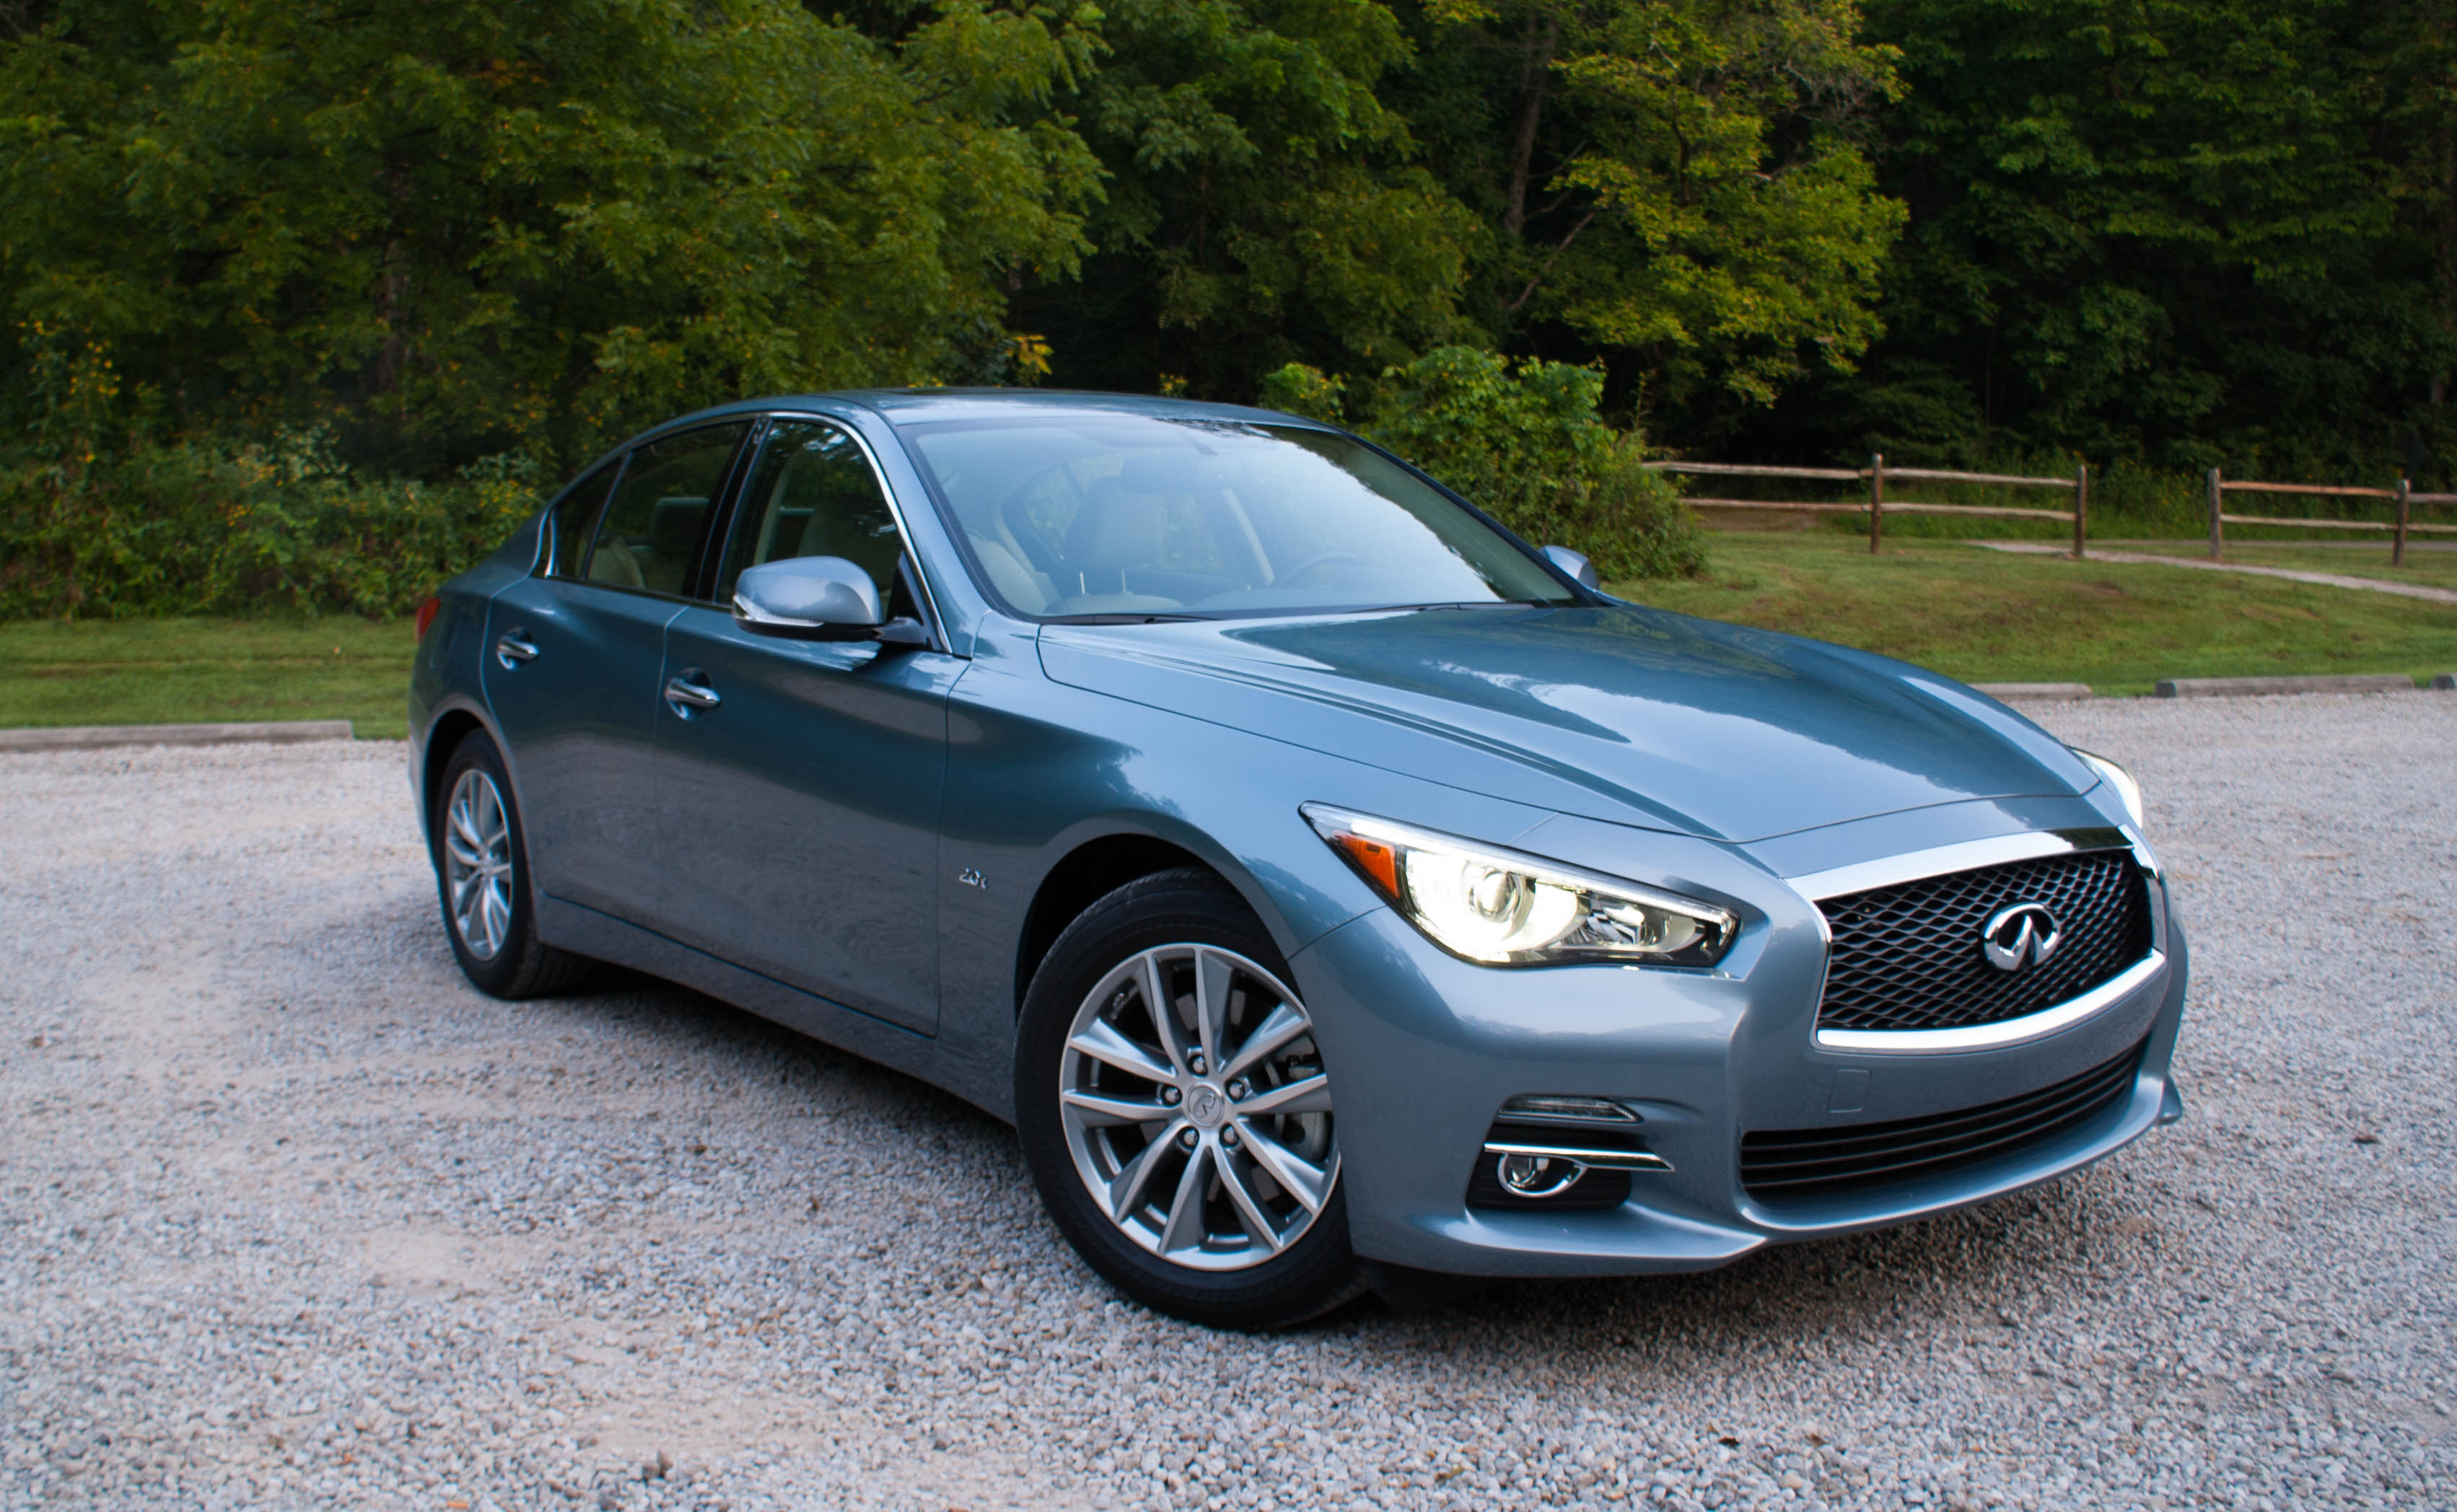 Elegant 2016 Infiniti Q50 2.0t AWD Review U2013 Four Door Sports Car   The Truth About  Cars